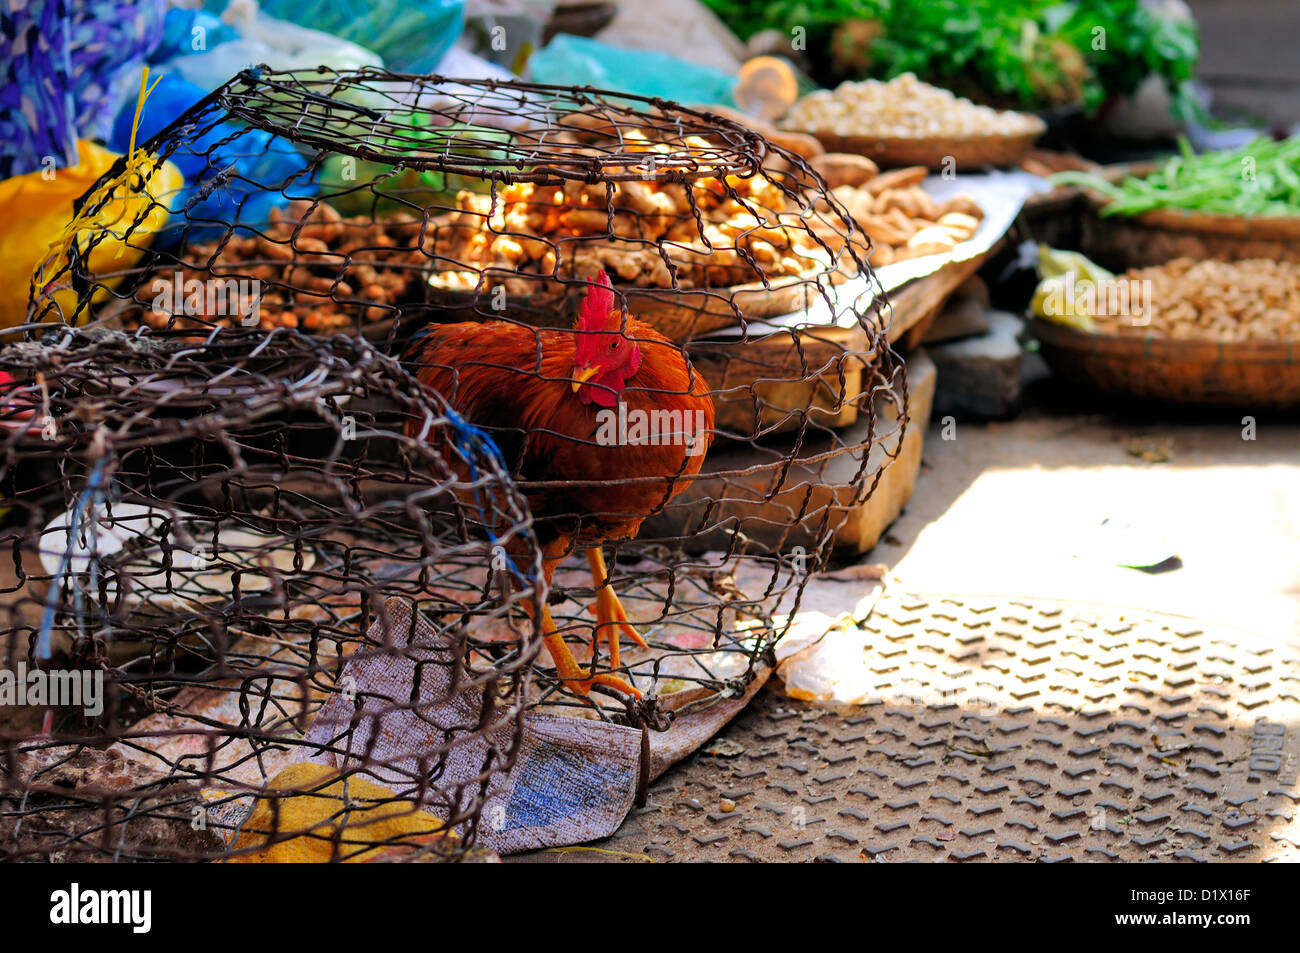 Chicken in Wire Cage. Hoi An Market, Vietnam, Asia - Stock Image